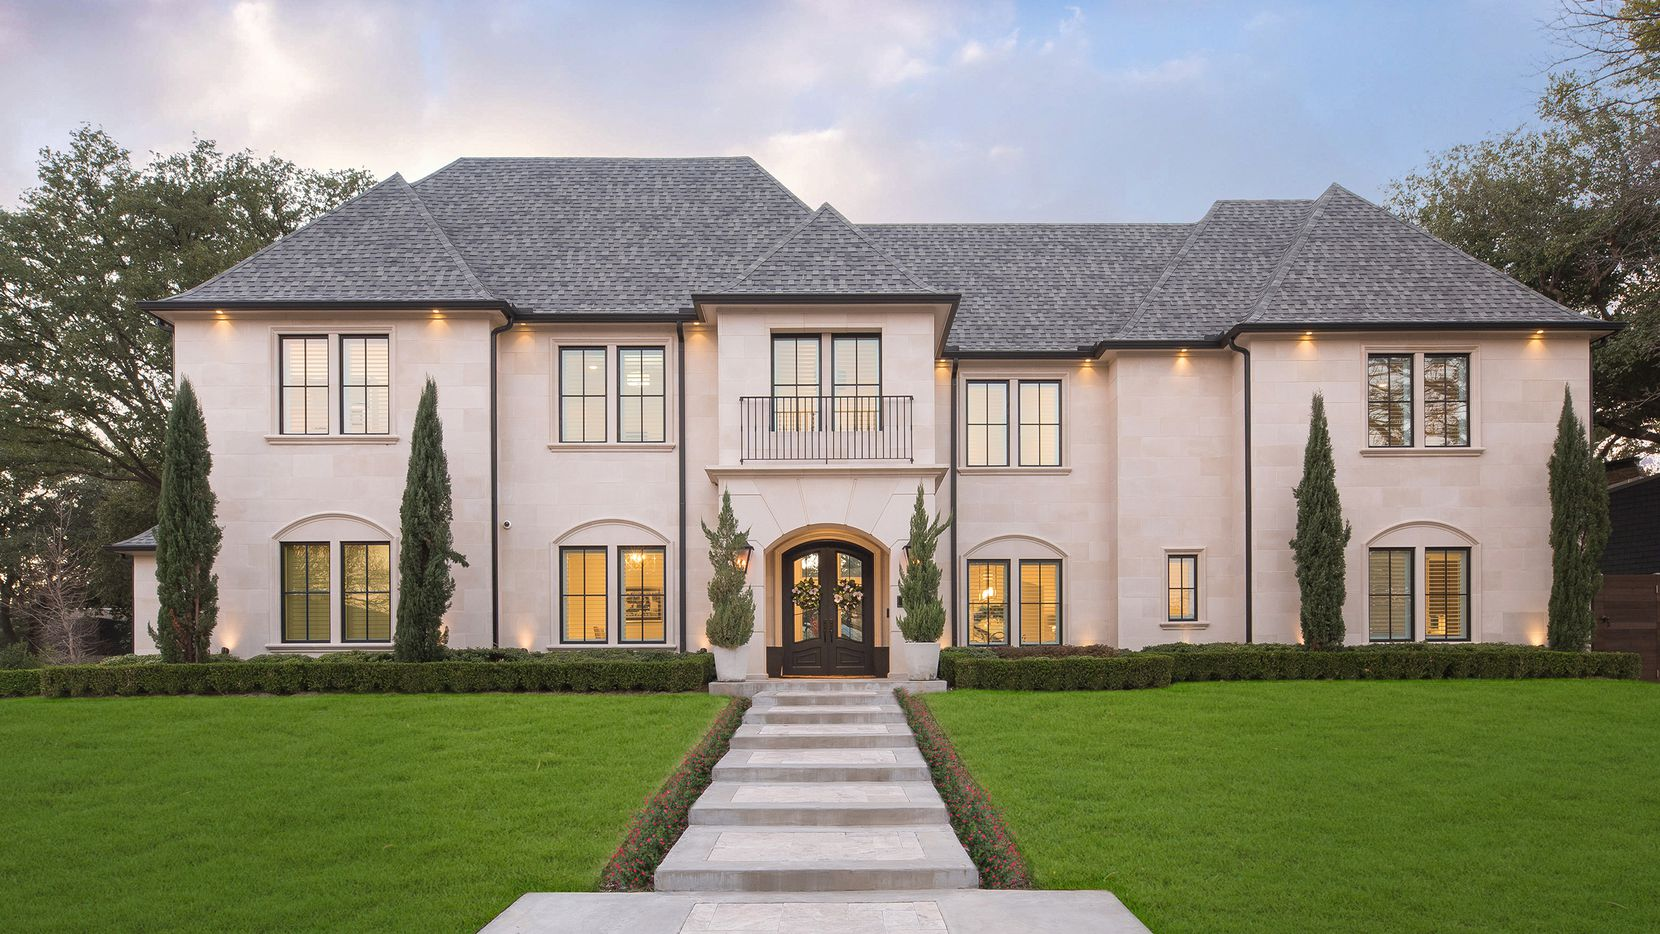 The 7,809-square-foot residence at 7233 Lupton Circle features six bedrooms and a contemporary style.